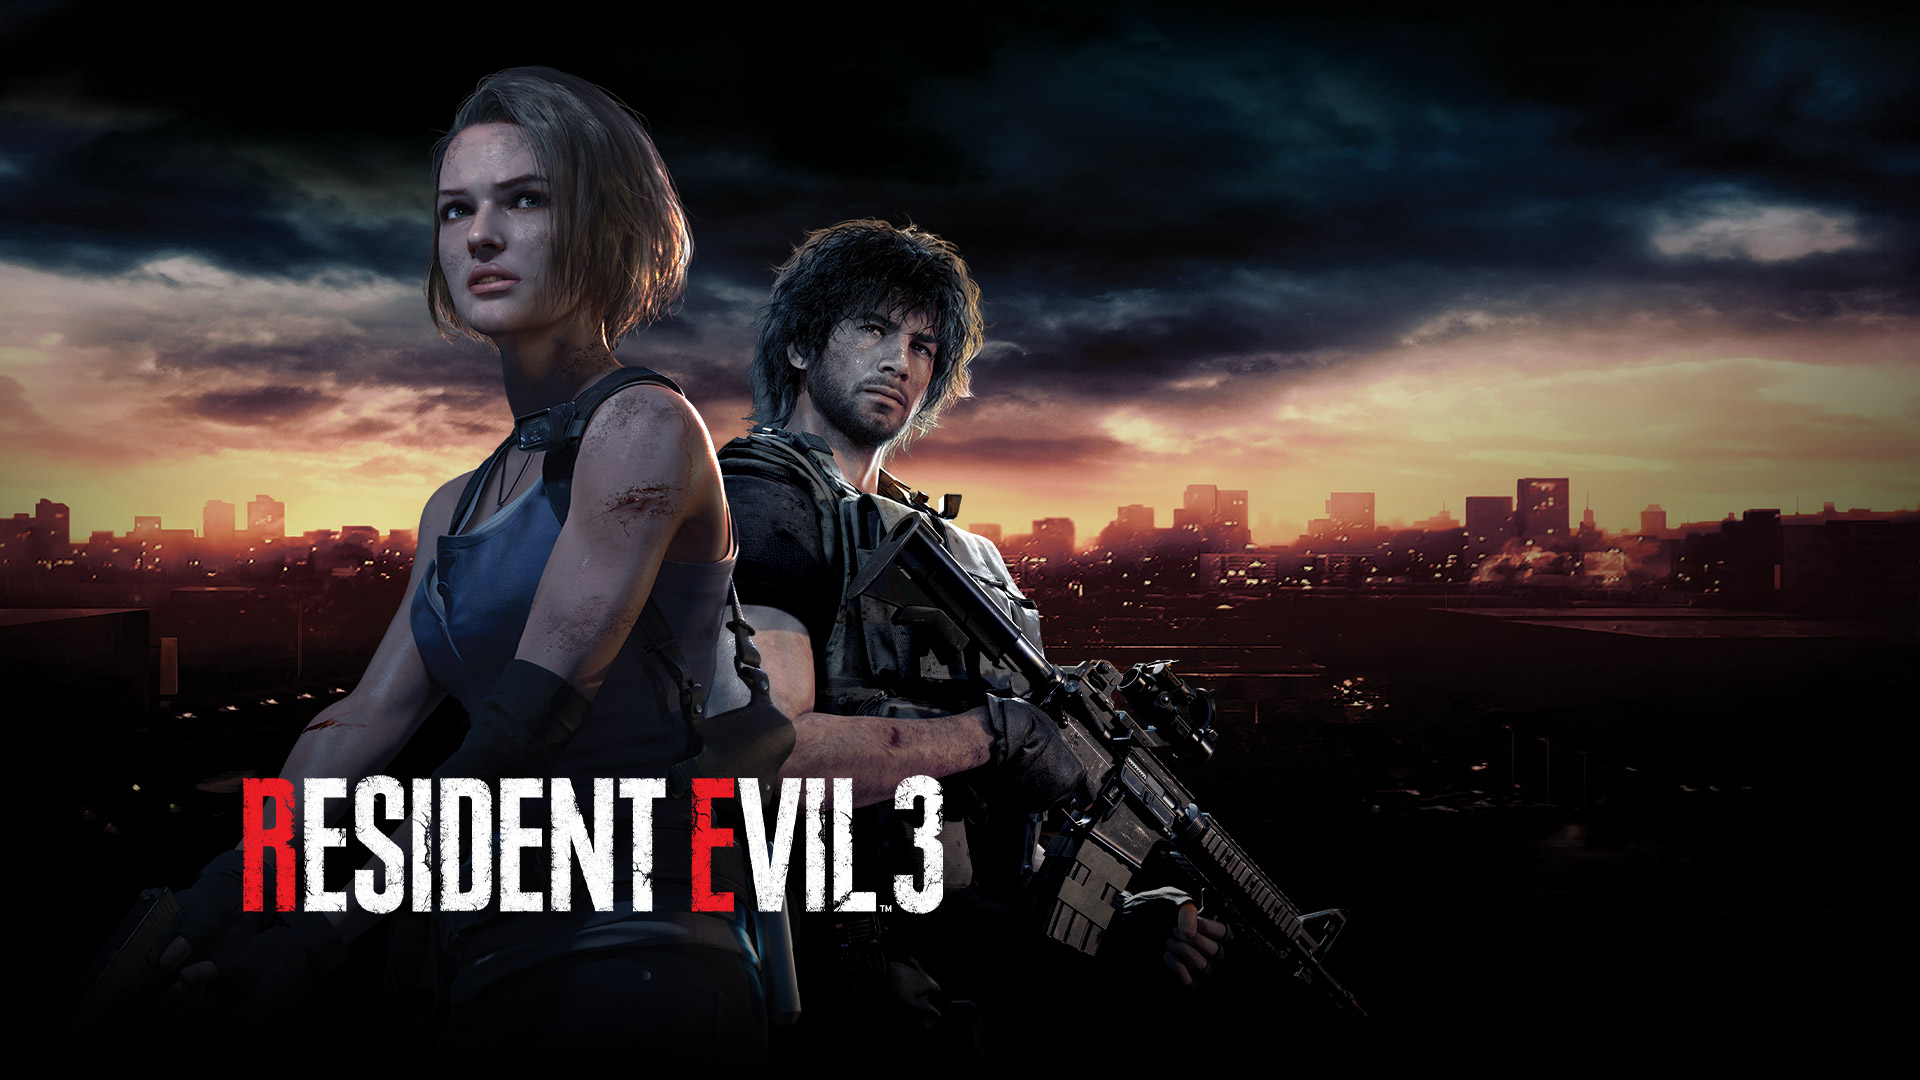 Resident Evil 3, Jill Valentine and Carlos stand in front of the Racoon City skyline